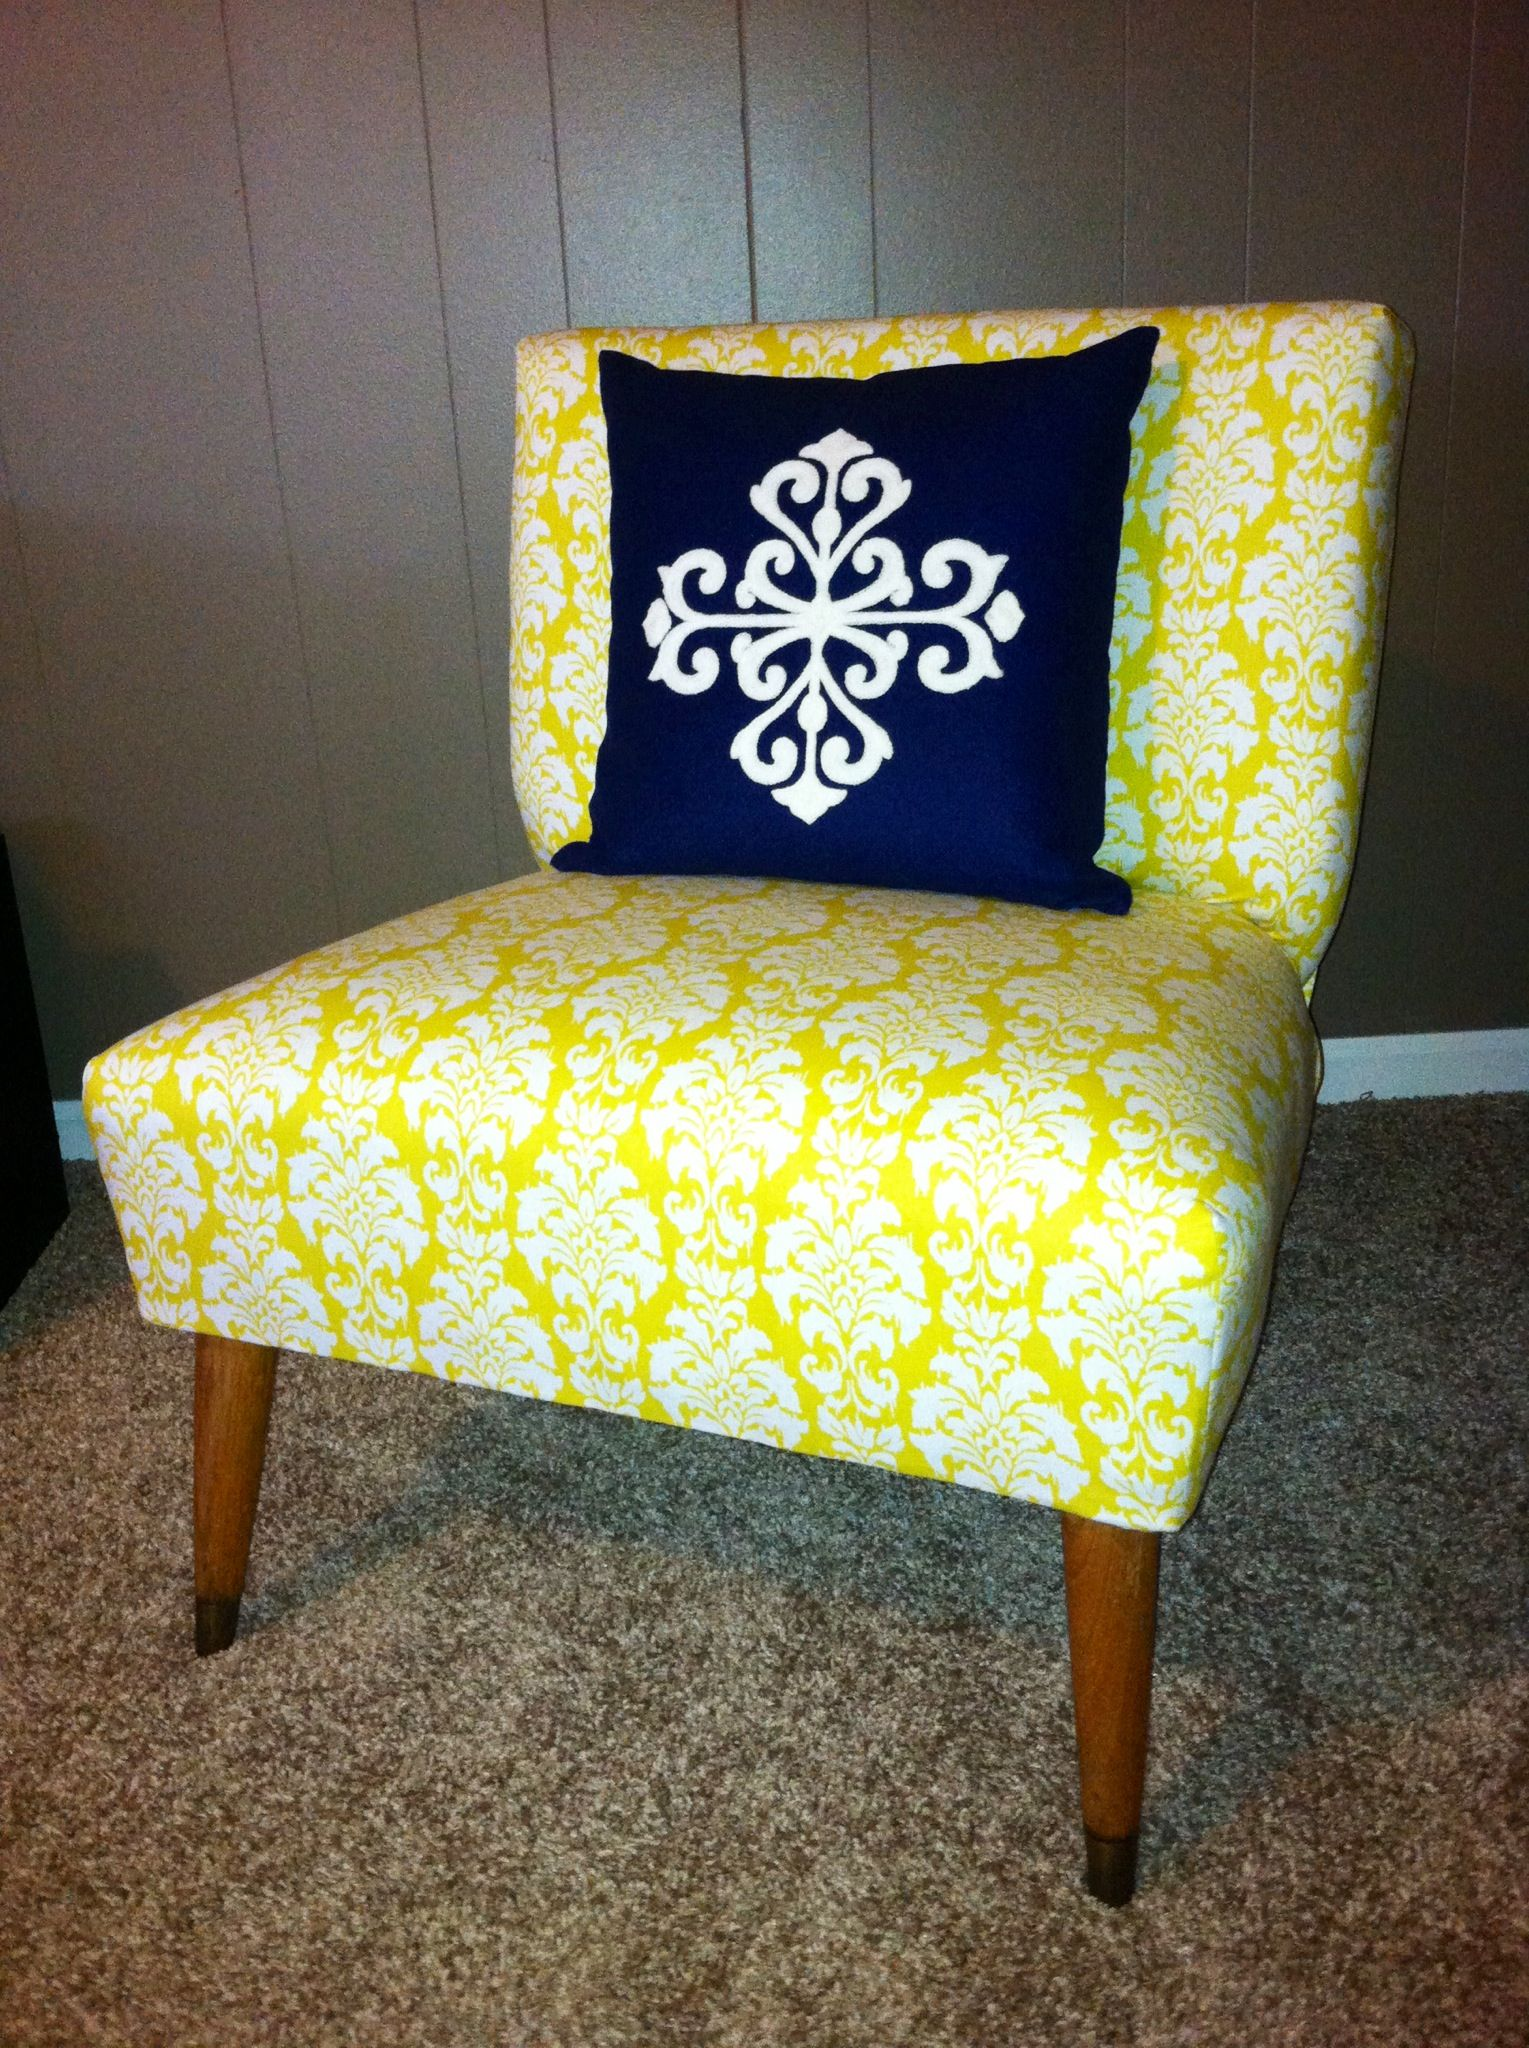 Where To Get Chairs Reupholstered Vintage Desk Armless Accent Chair With Yellow Floral Fabric For